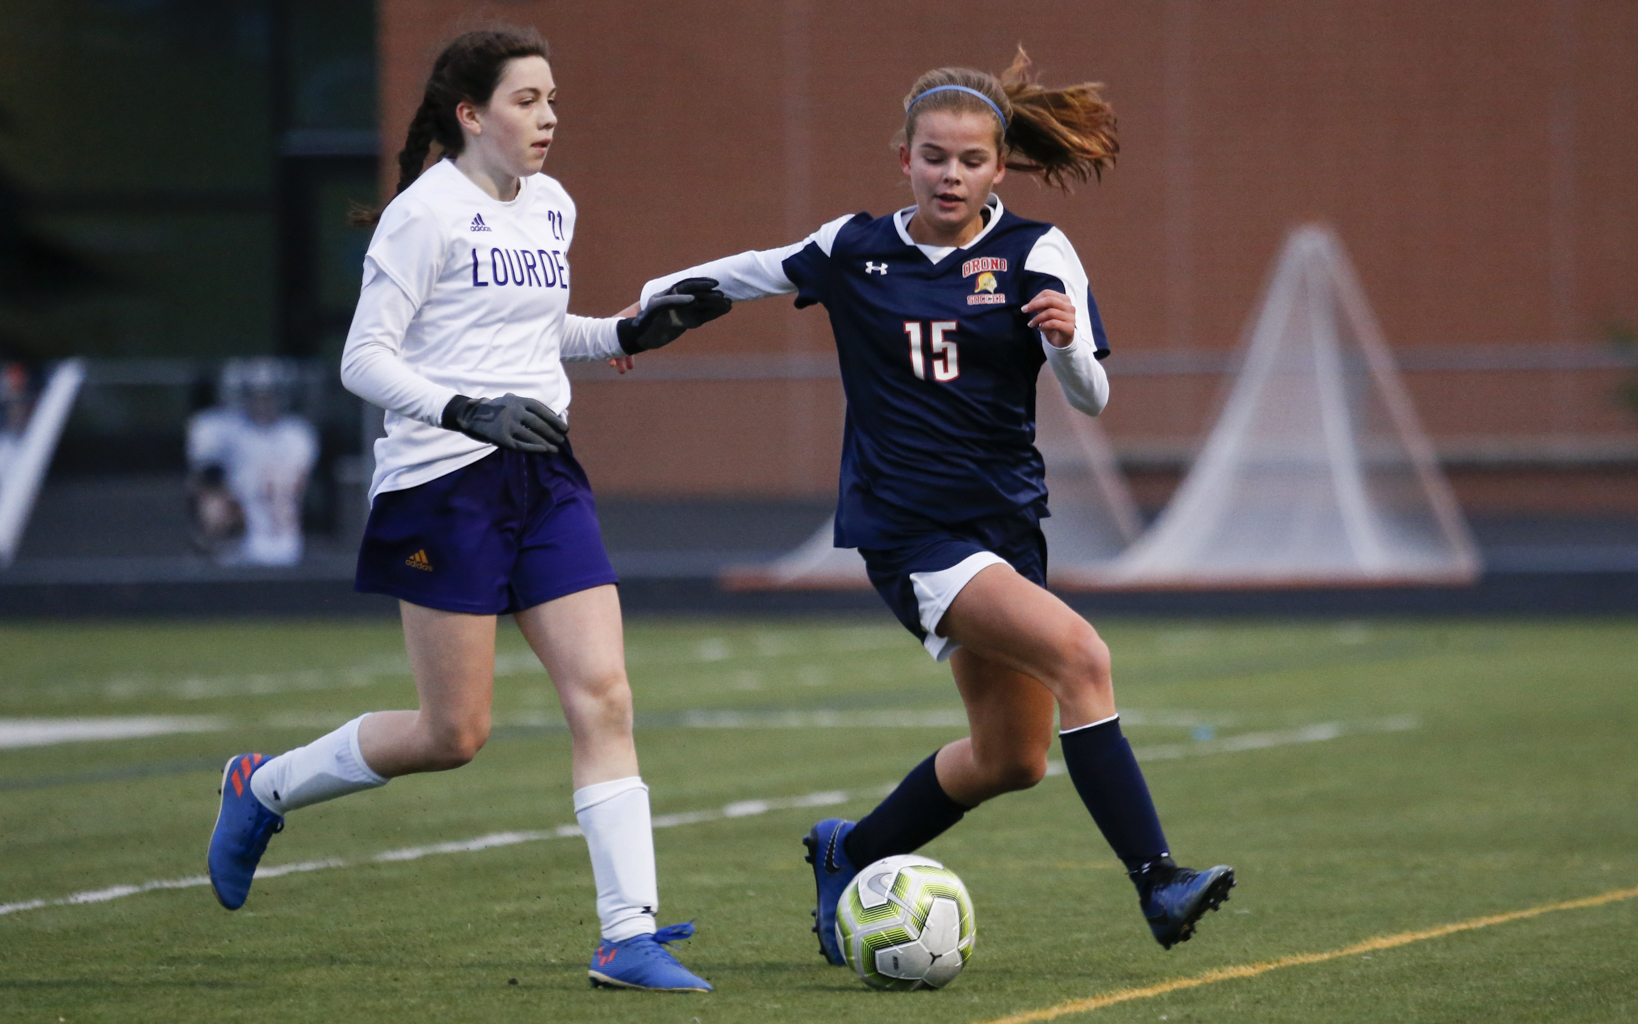 Orono's Nora Chouanard (15) races after a loose ball as Lourdes' Grace Buntrock (21) pursues. Chouanard's late first goal was the game winner in the Spartans a 1-0 victory over the Eagles. Photo by Jeff Lawler, SportsEngine